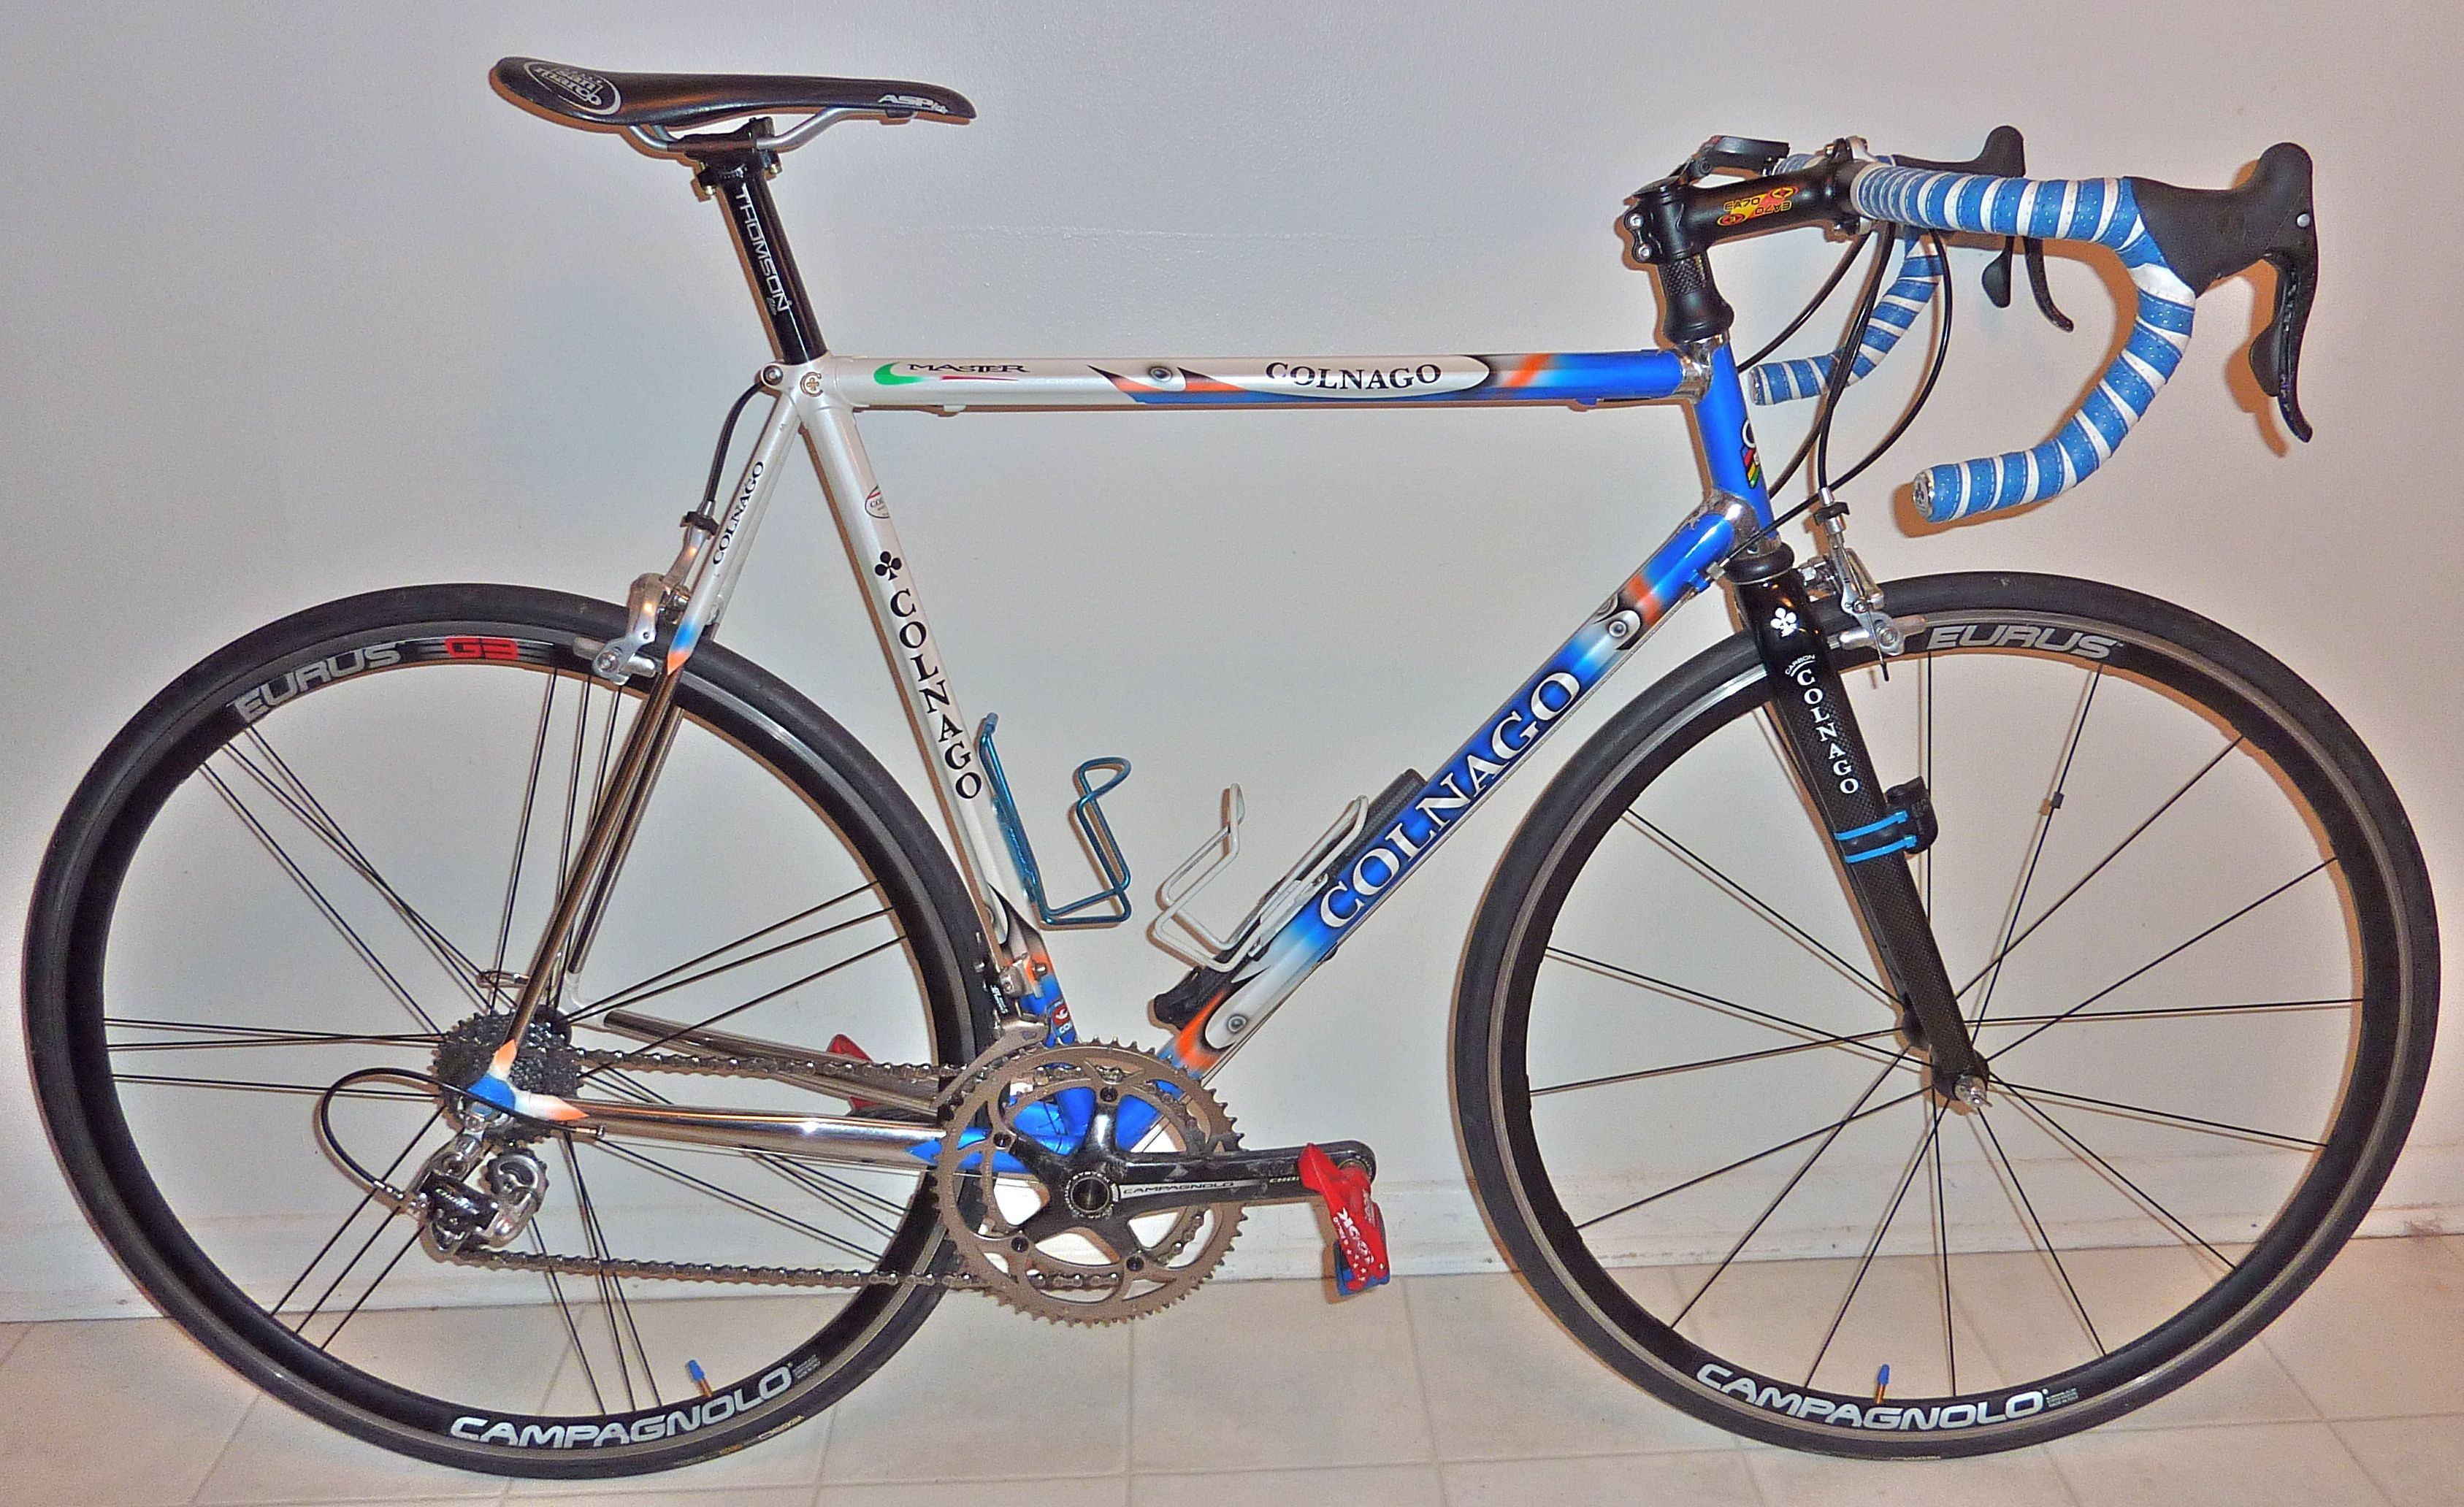 Alan Bike Made In Italy steel racing bicycle